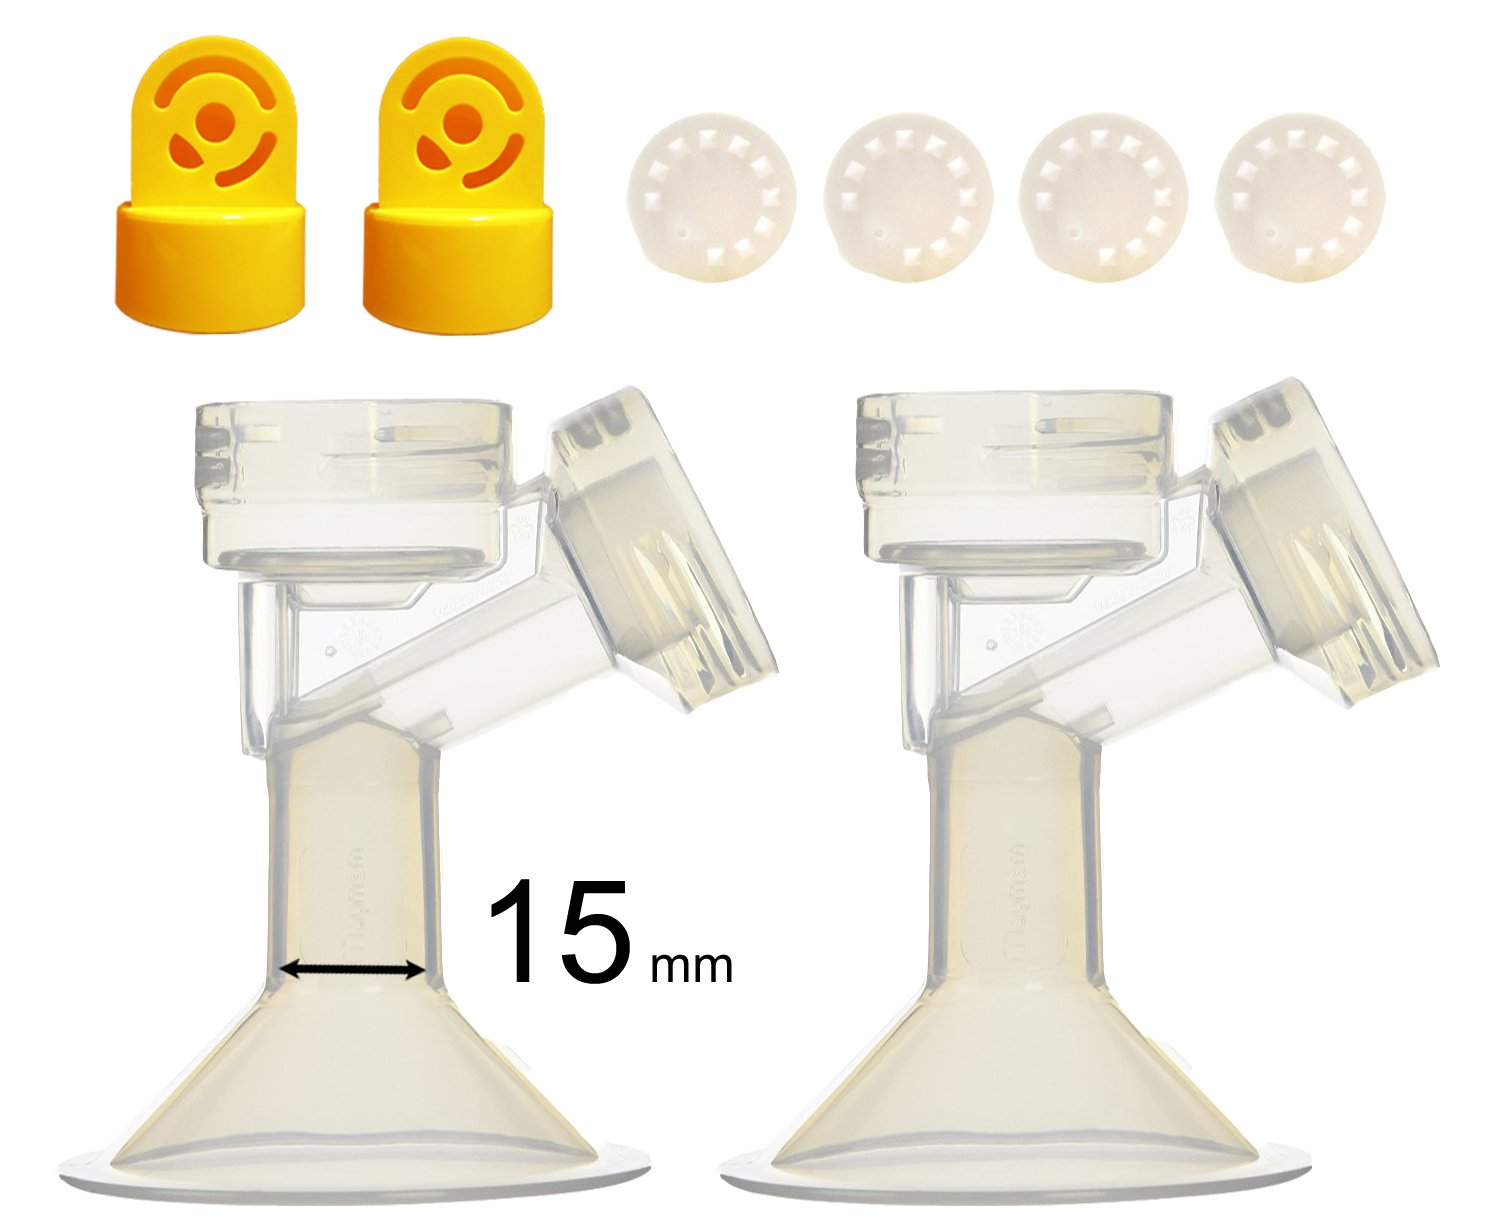 Maymom Brand 15 mm 2xOne-Piece Extra Small Breastshield w/Valve and Membrane for Medela Breast Pumps; by Maymom